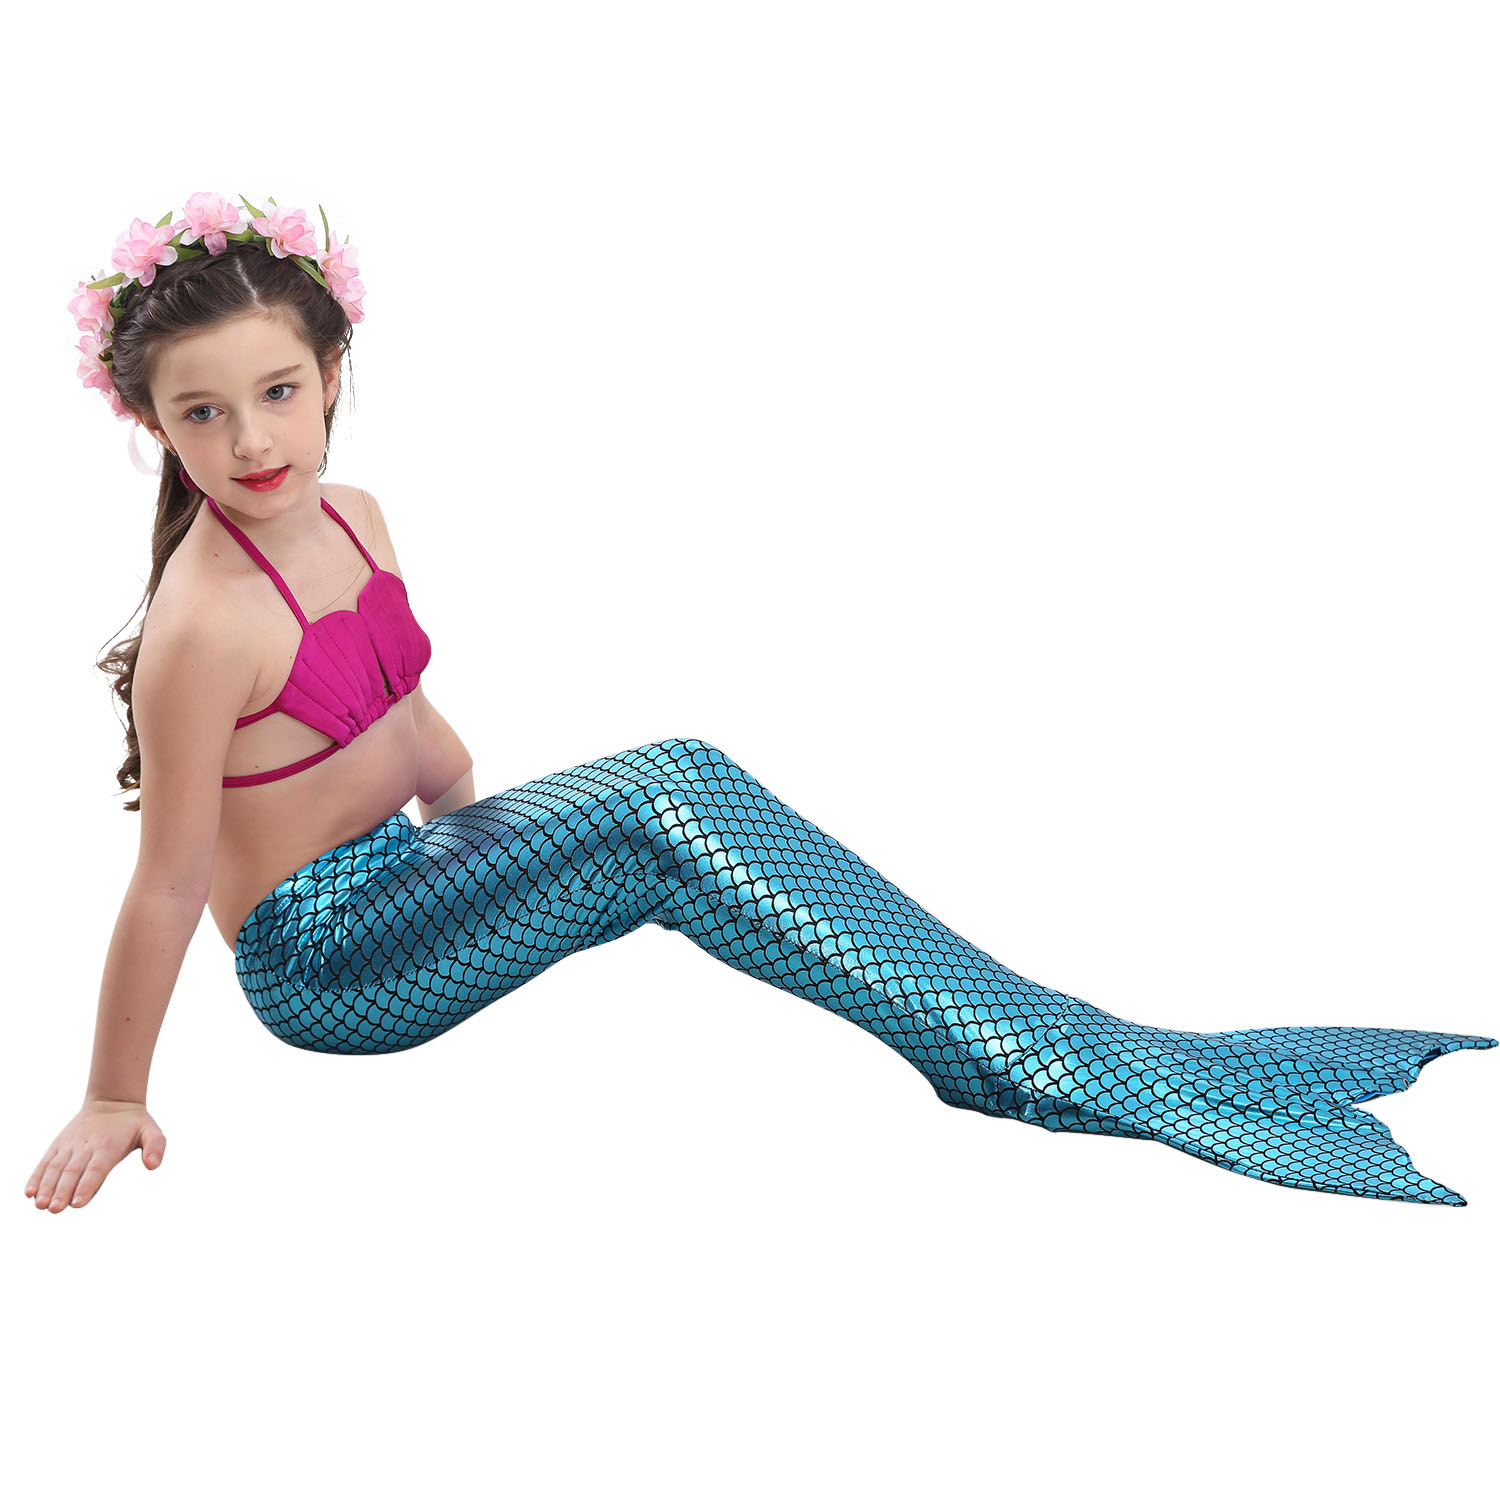 Little Mermaid Tails for Swimming Costume Mermaid Tail Cosplay Girls Swimsuit Kids Children Swimmable suit Monofin 4